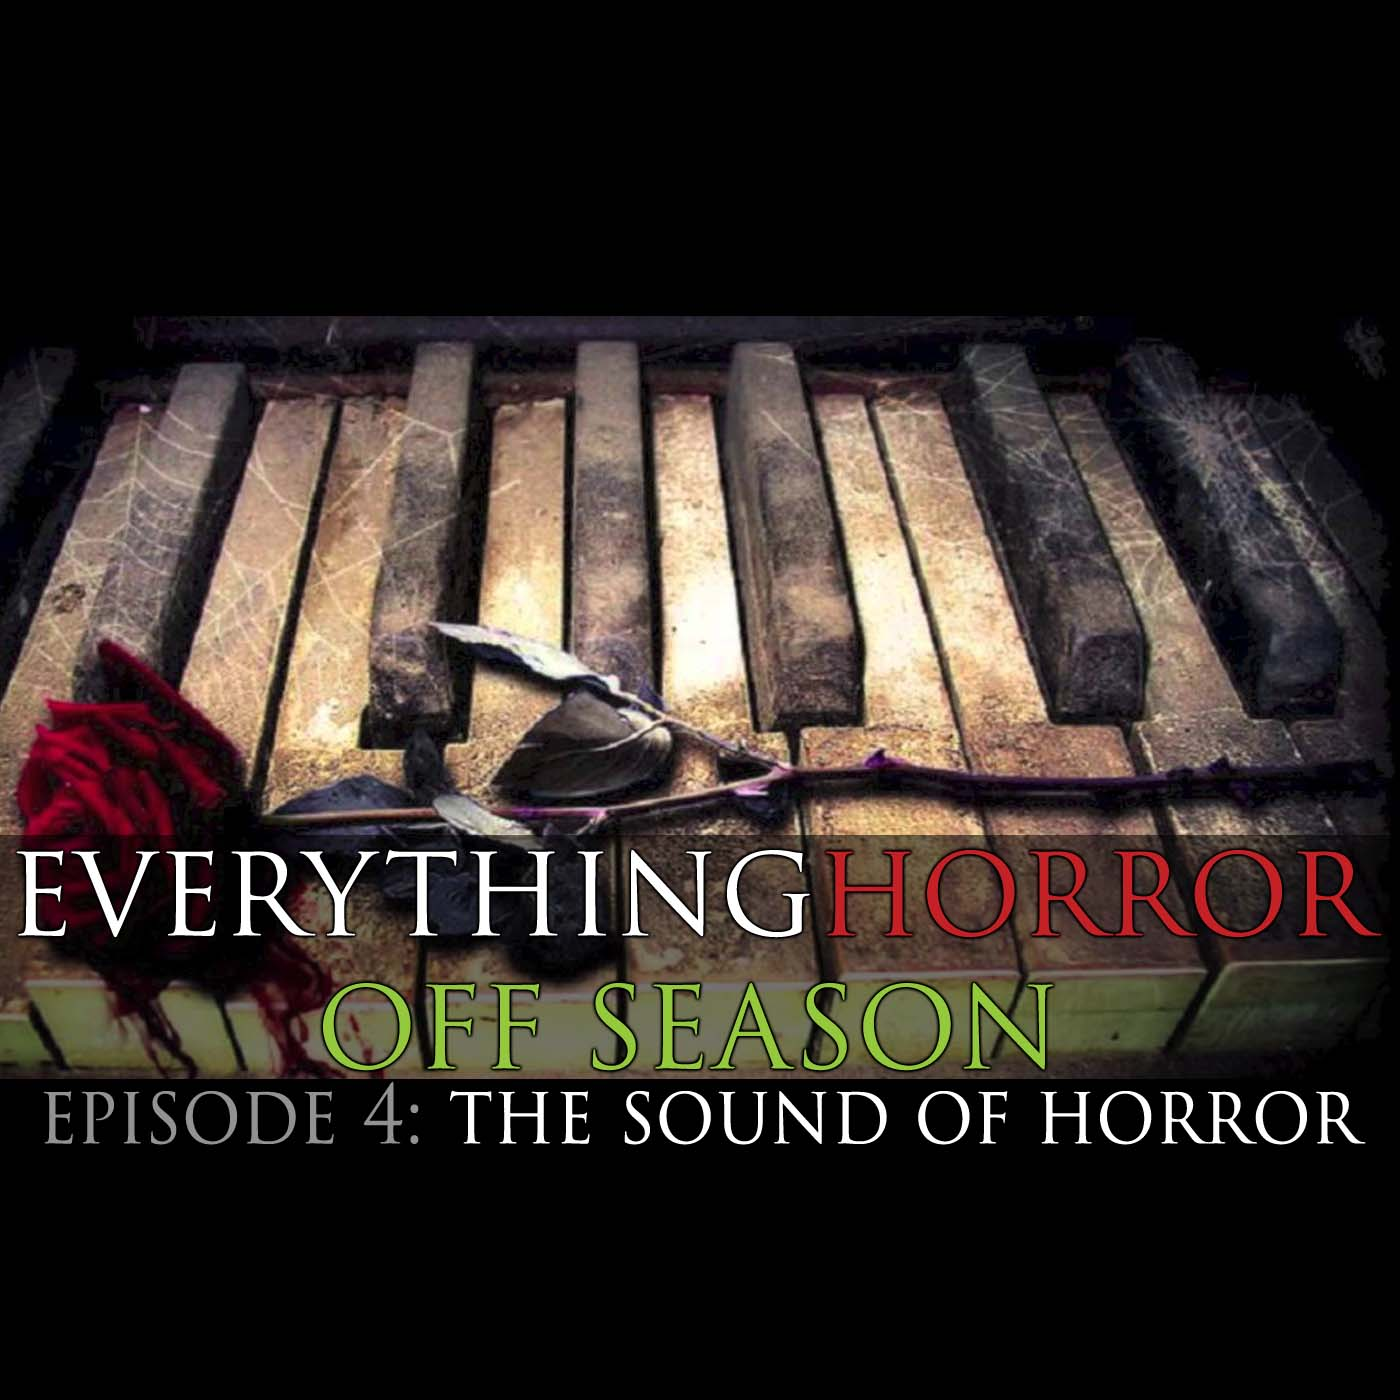 Off Season: Episode 4 - The Sound Of Horror